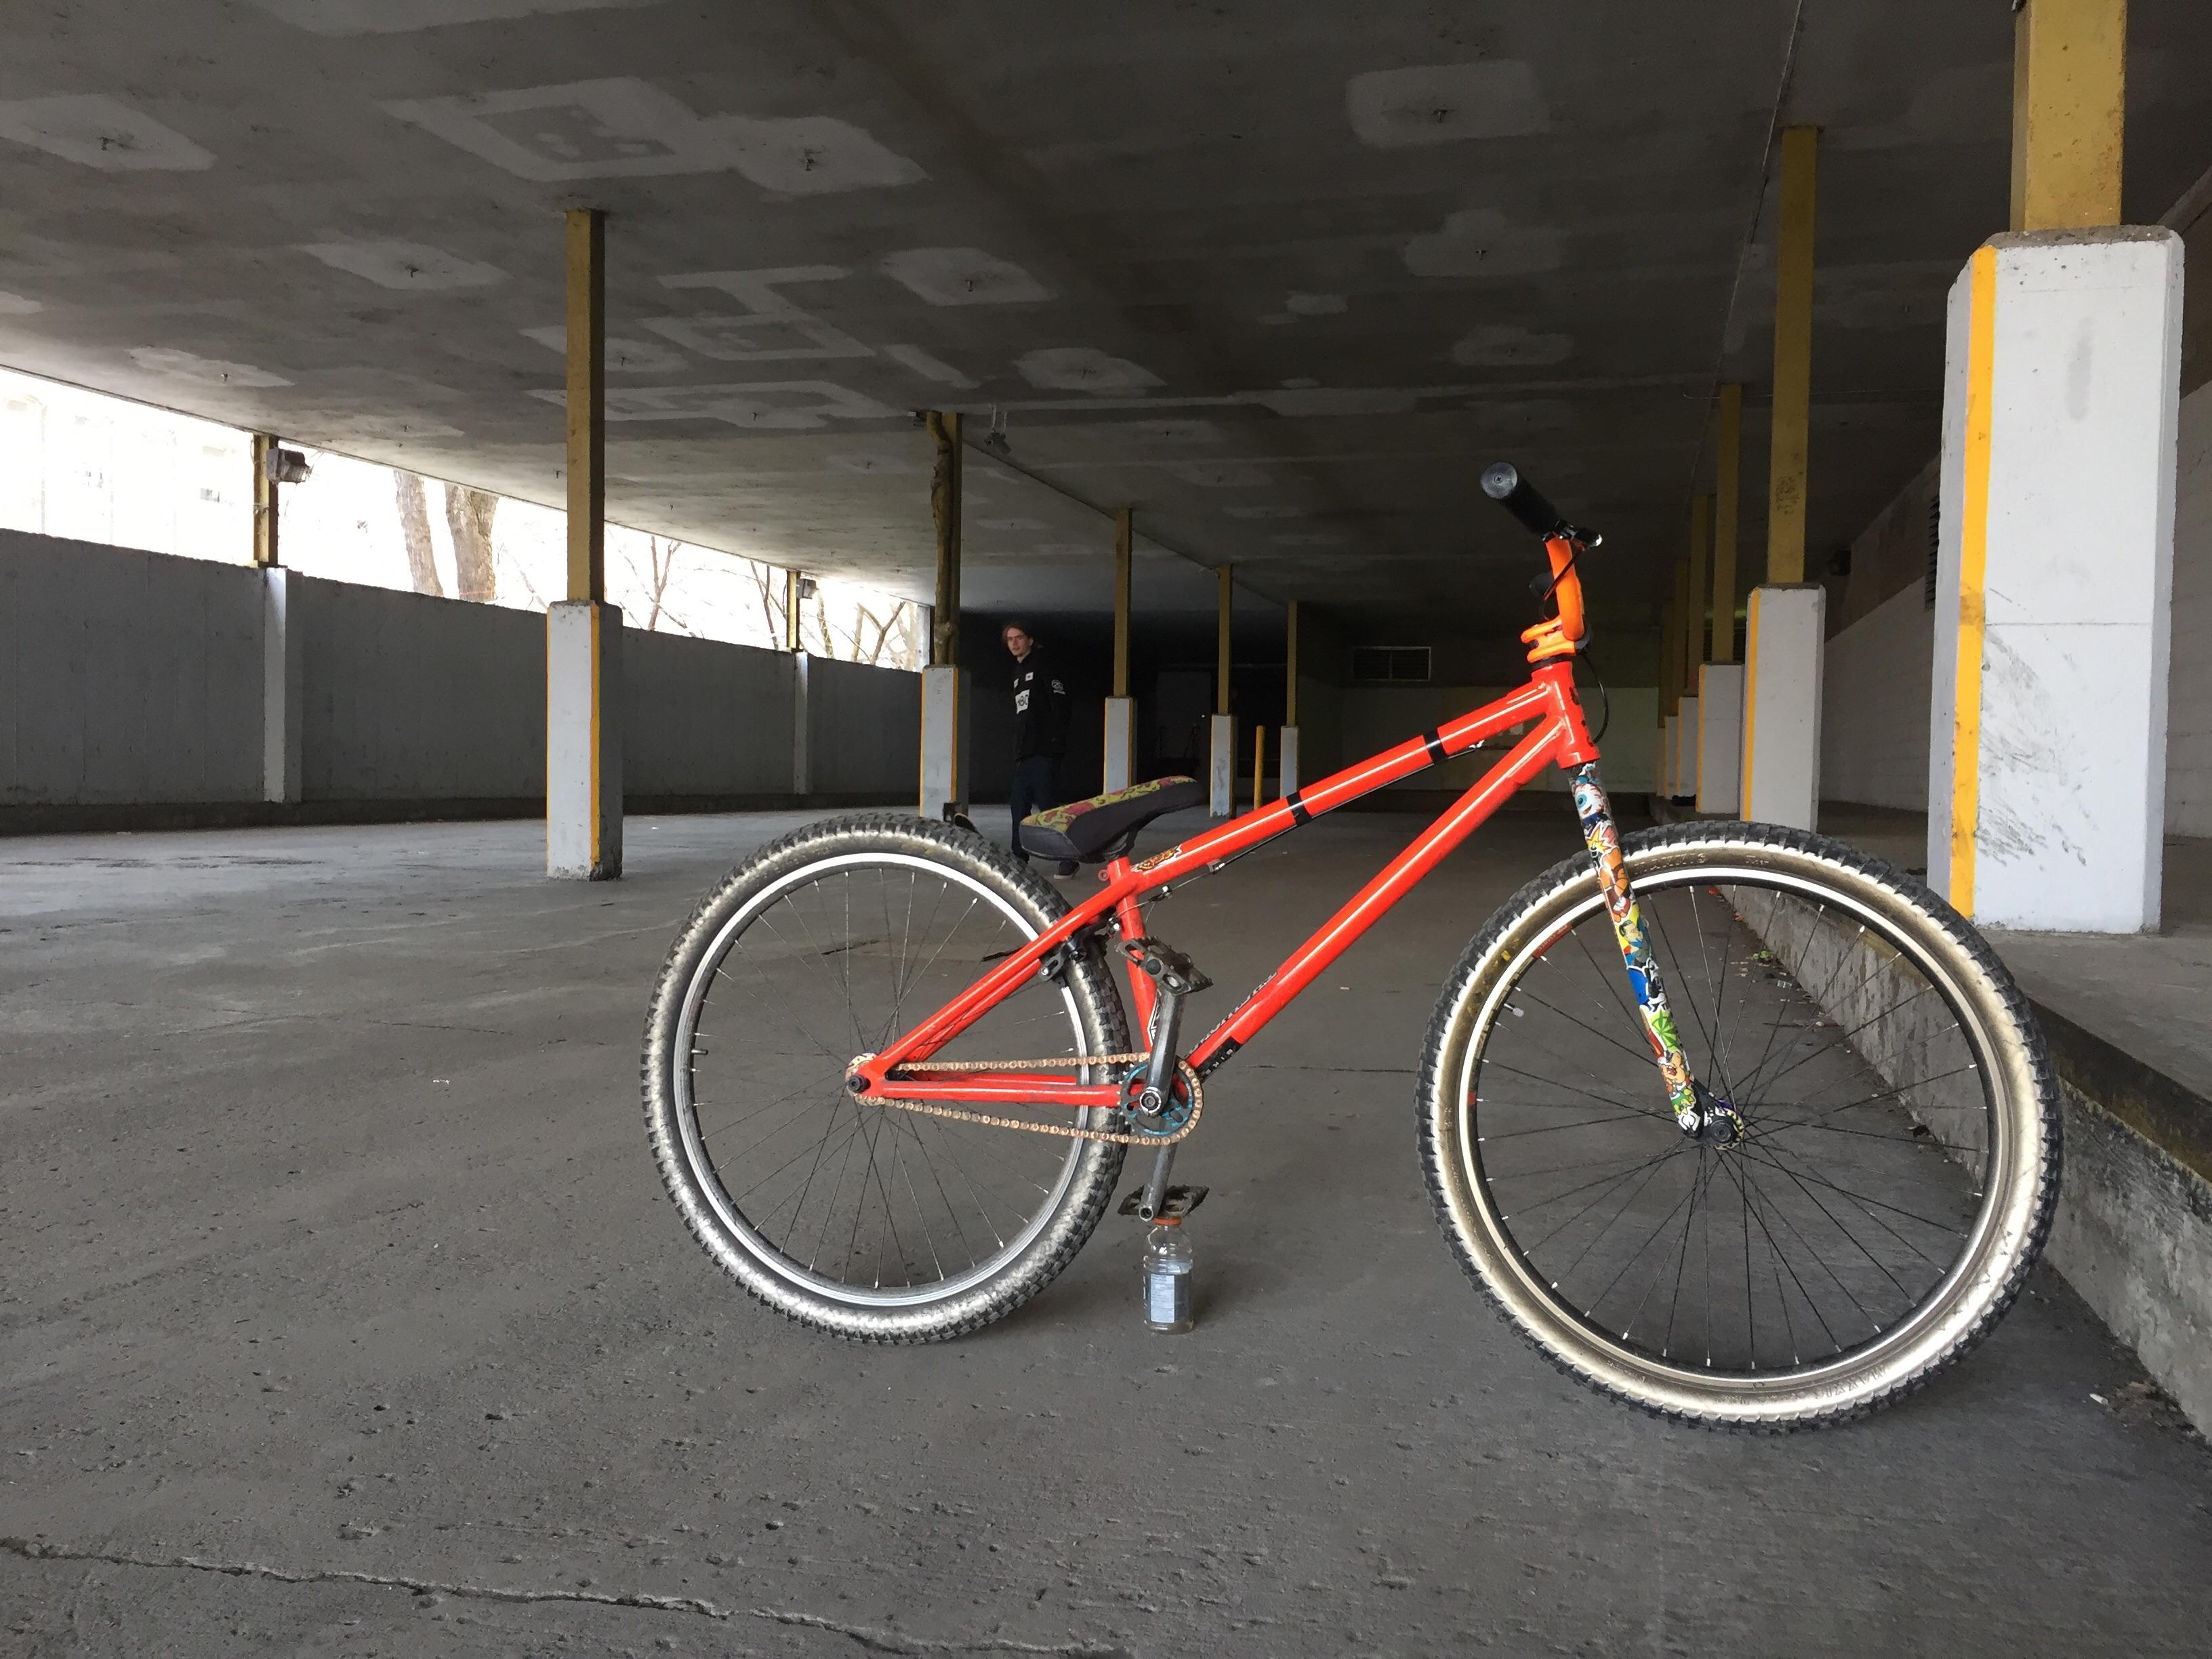 Bmx Parts Got Love For A 26 Mainly Built With Bmx Parts Frame Is A Ns